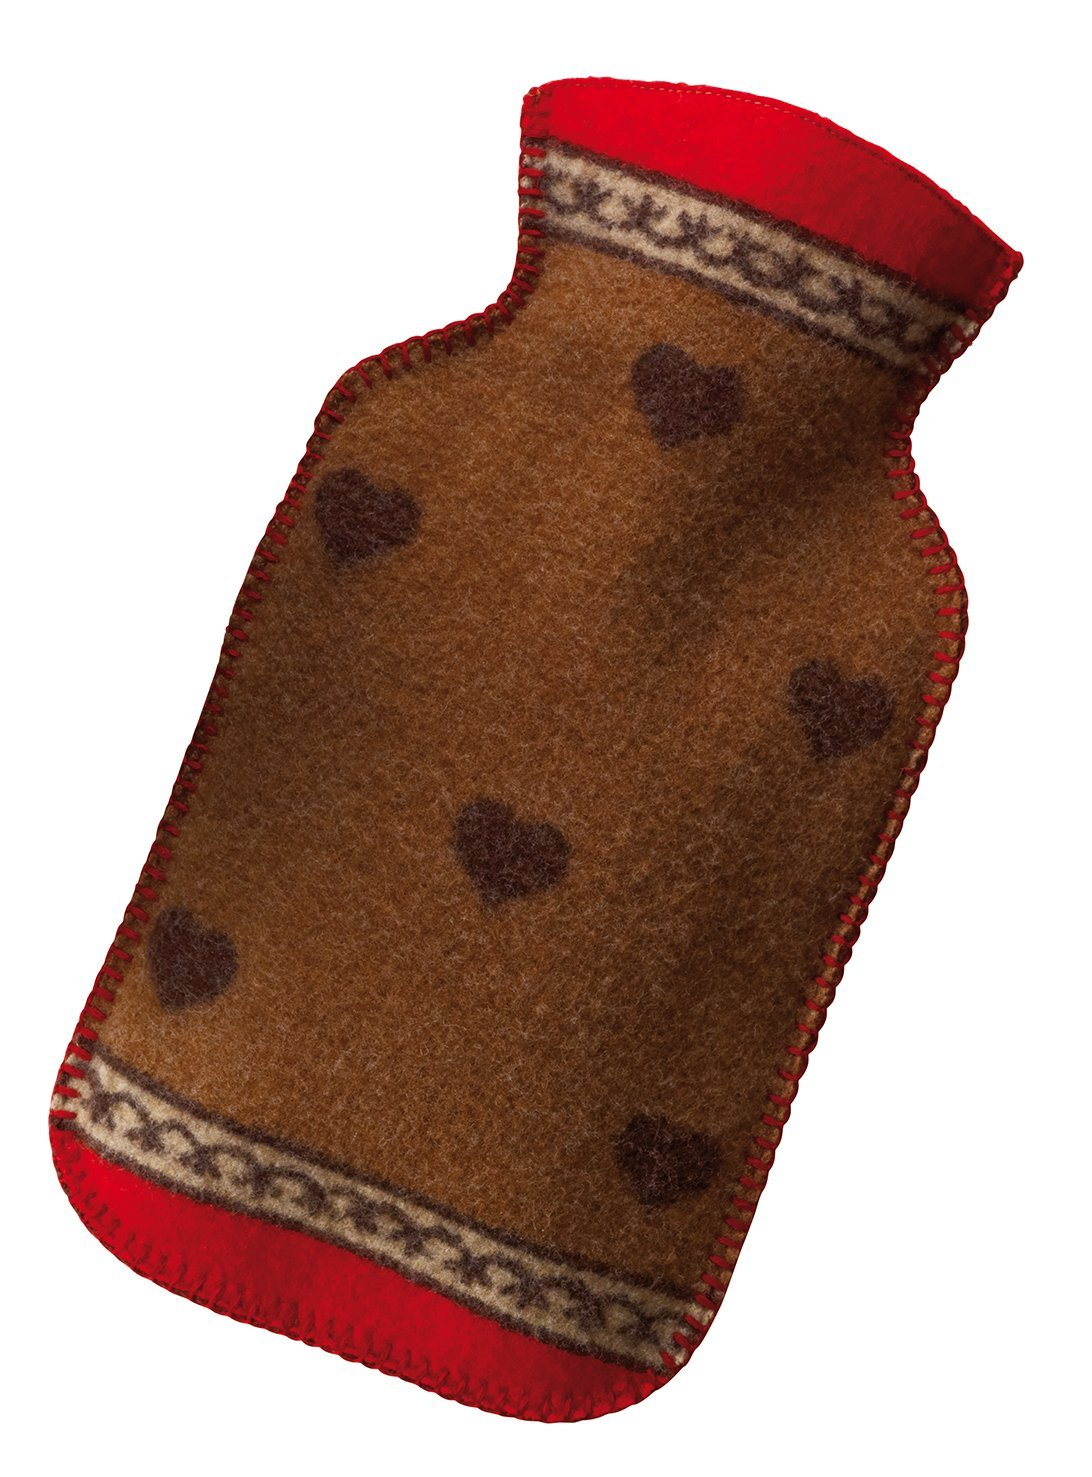 Giesswein 520588100-275 'Max' Hot Water Bottle Colour 275 by